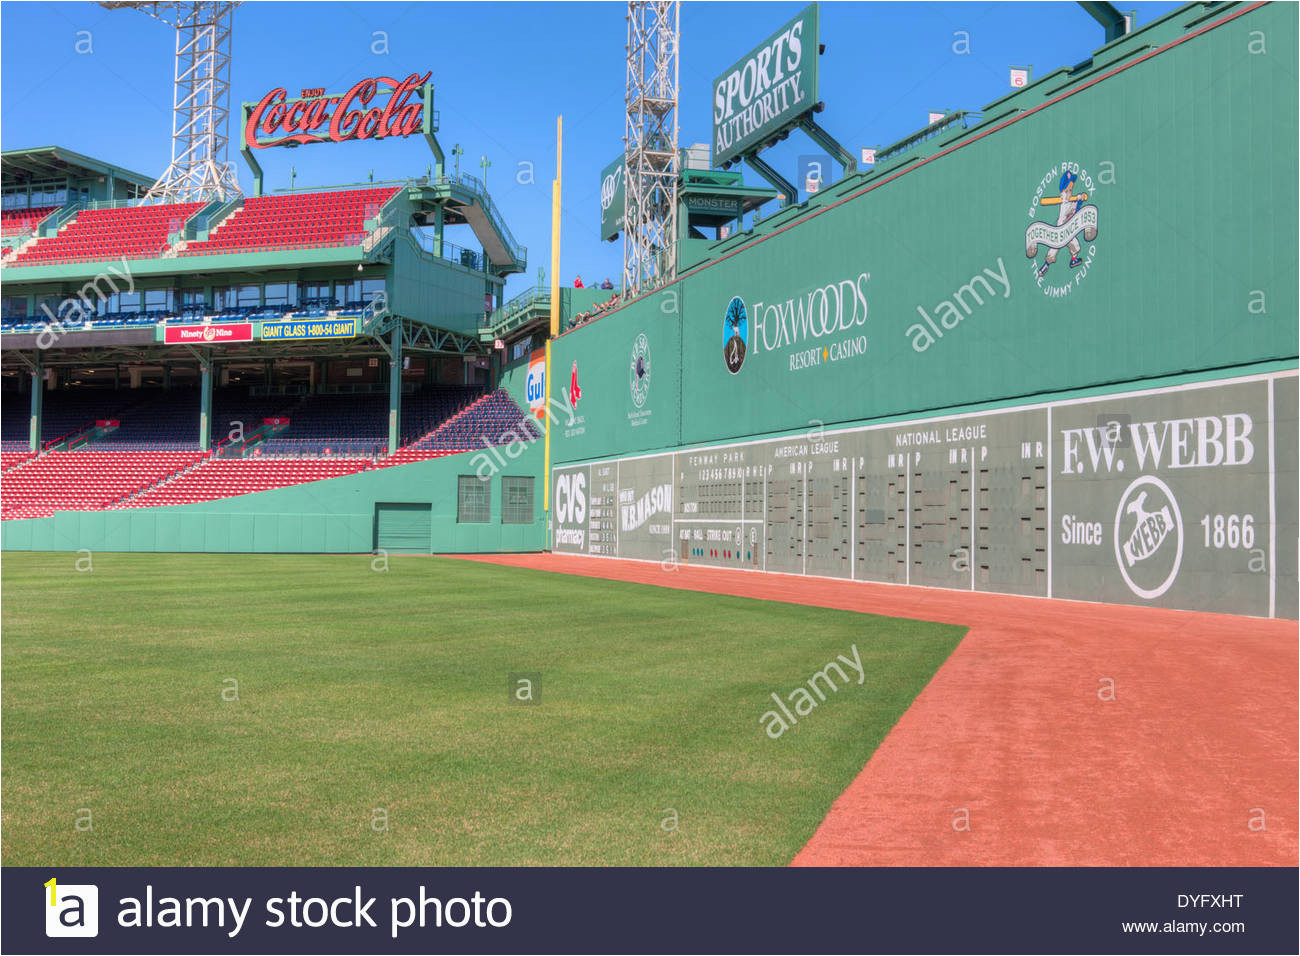 The Green Monster the famed left field wall towers over the field in iconic